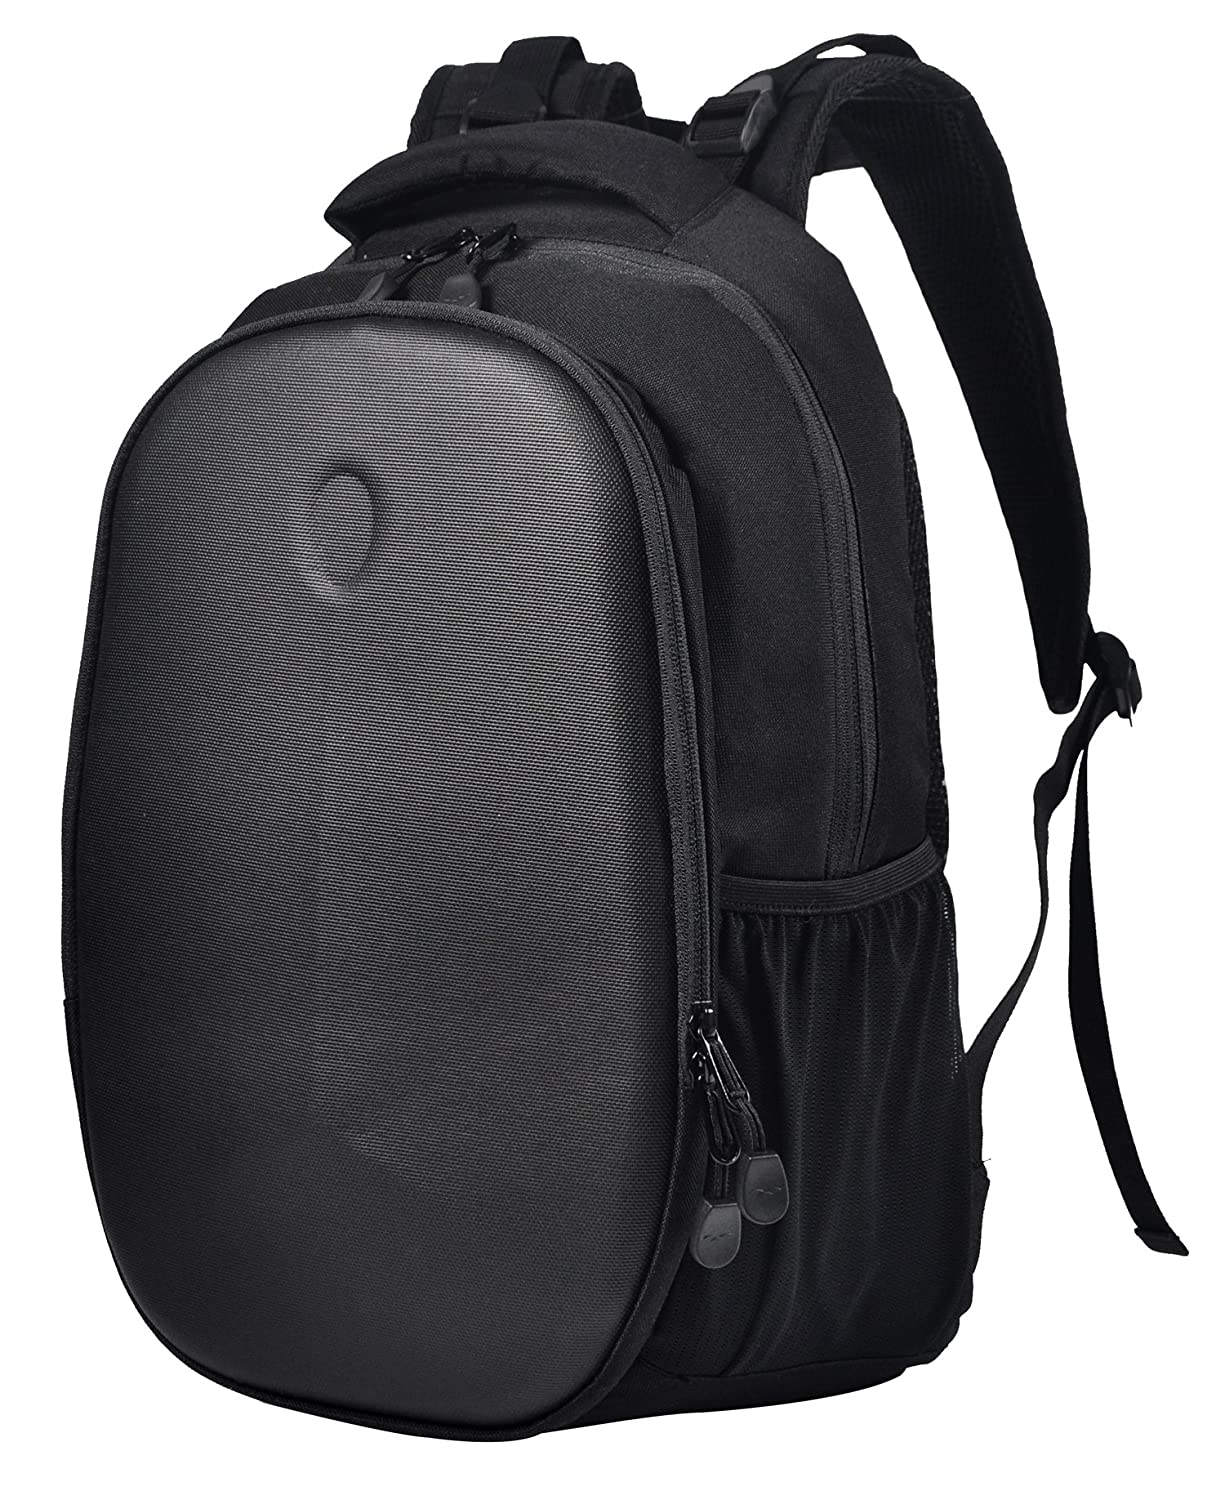 MIER Insulated Backpack Leakproof Lunch Cooler Backpack for Camping, Hiking, Picnics, Travel, Sports, Park, 20 Can, Black